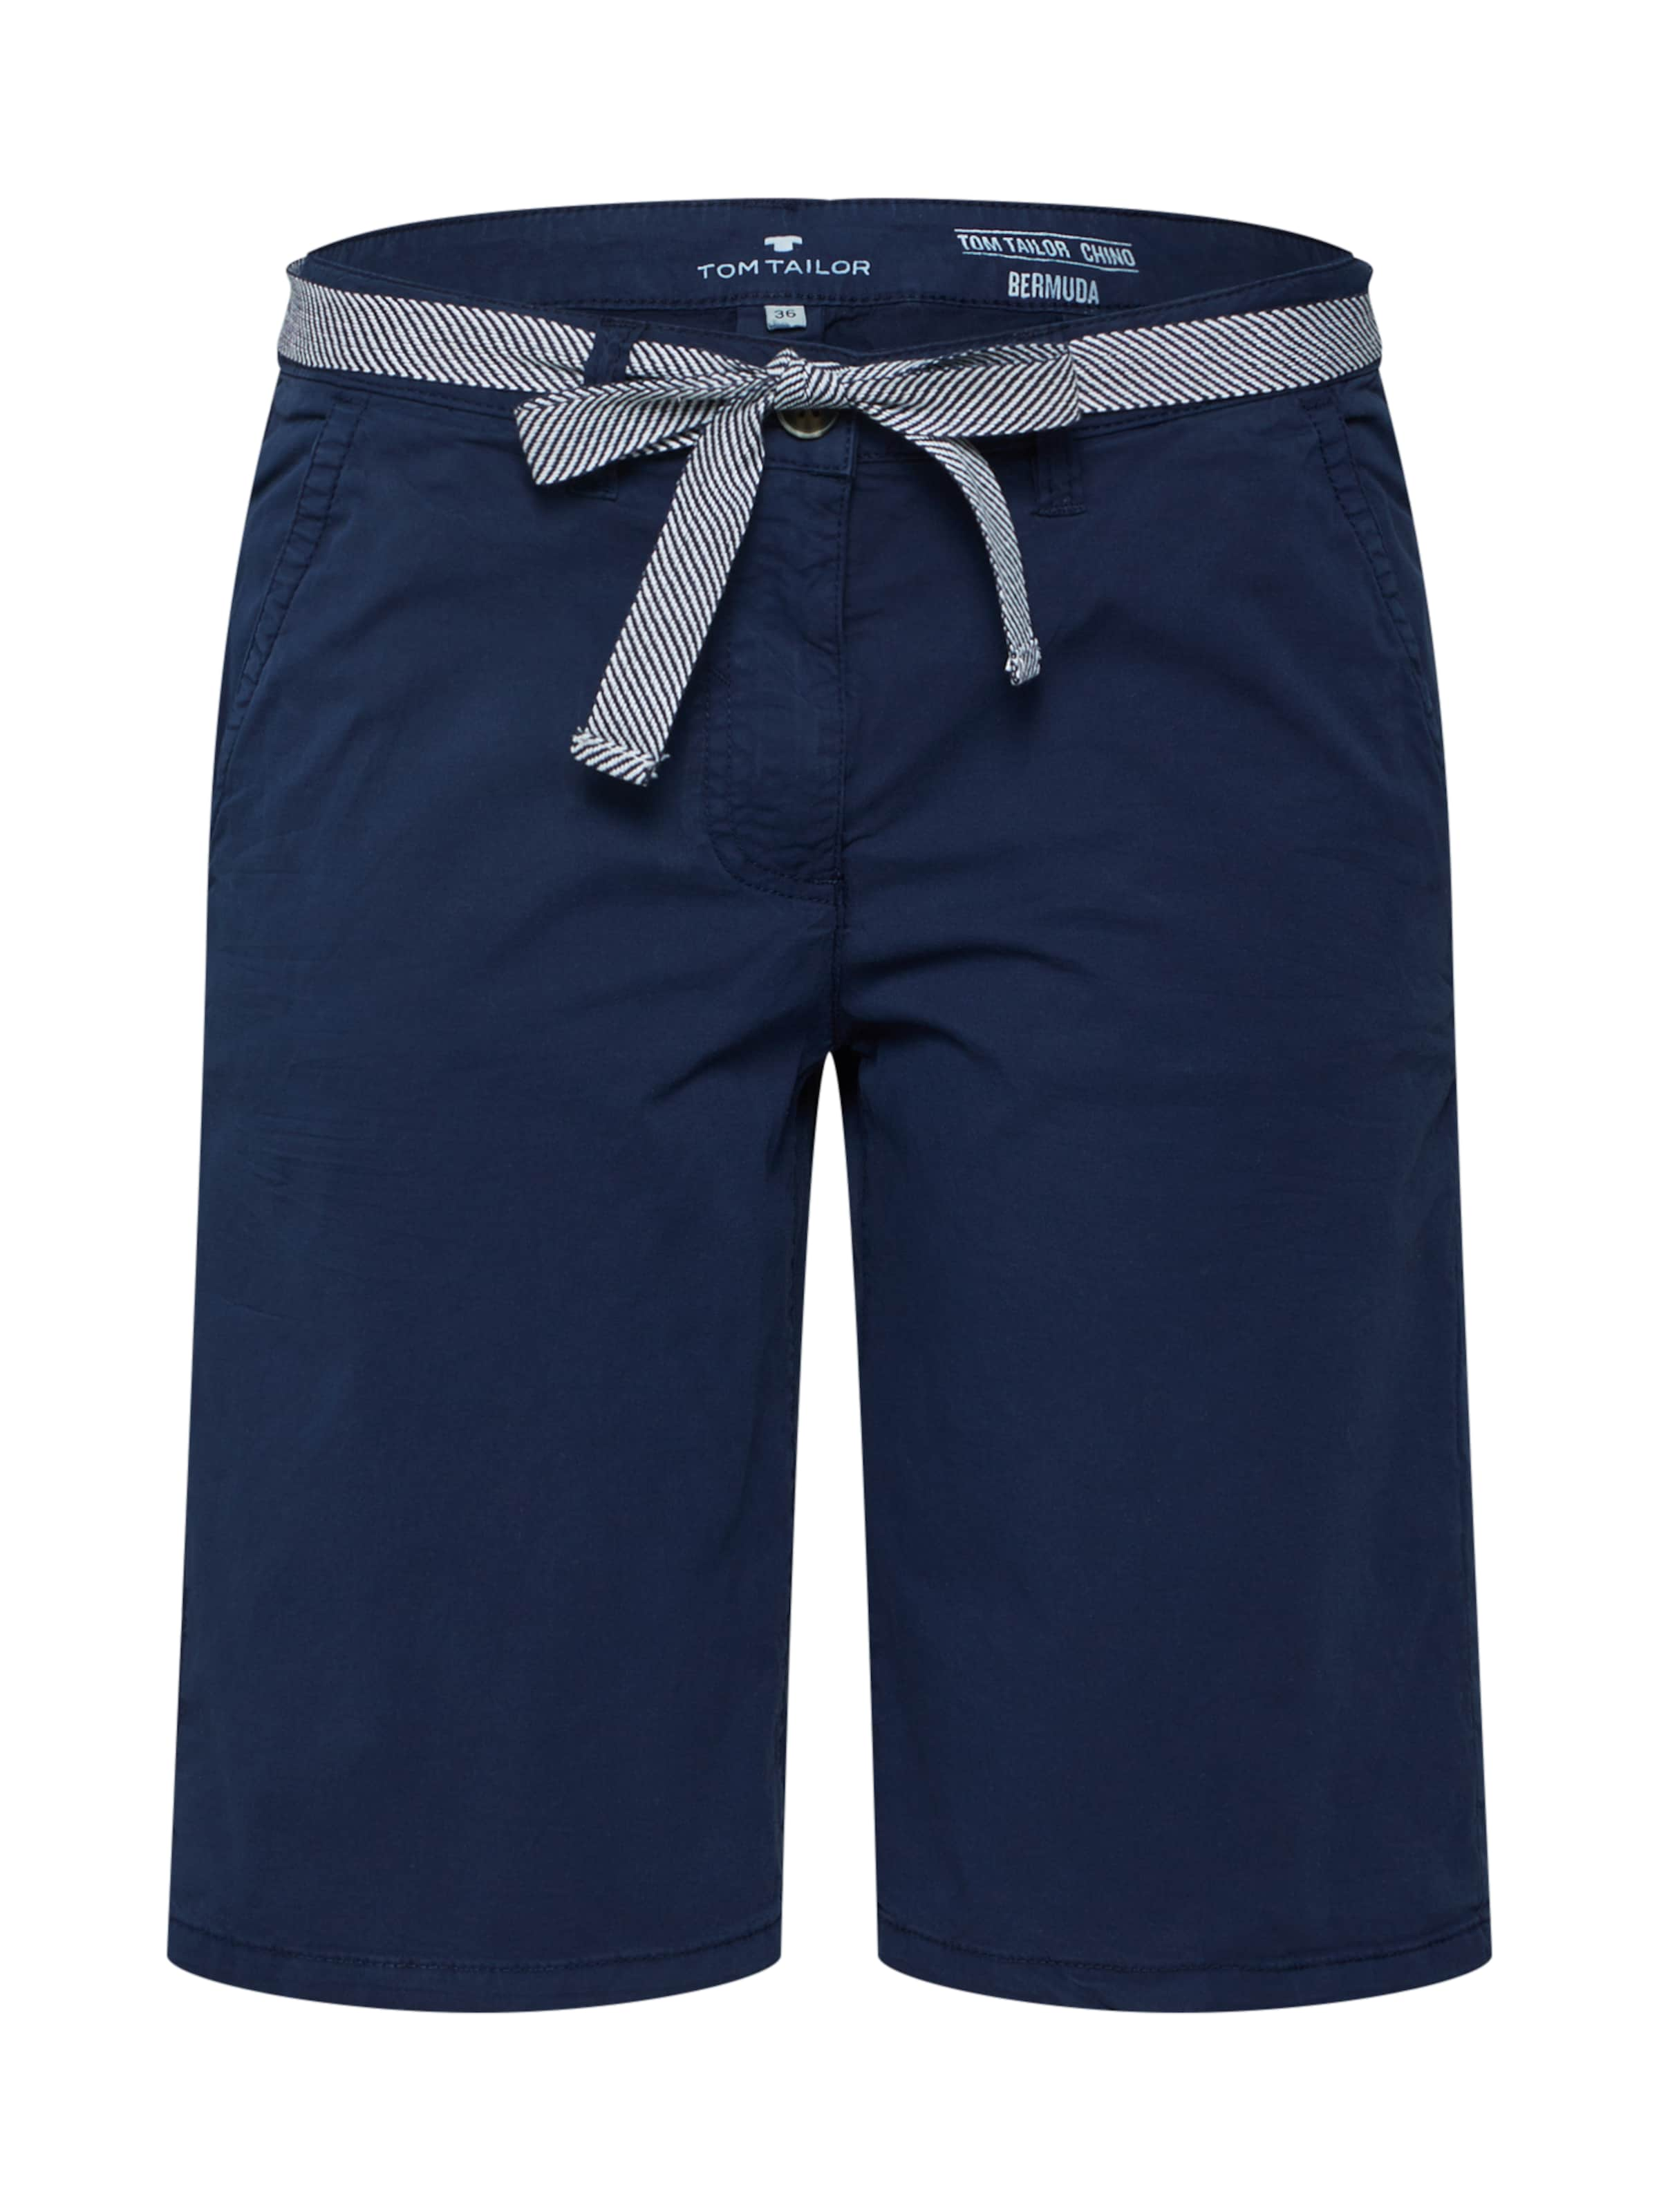 Tom Pantalon Tailor Nuit En Chino Bleu orCdxBe